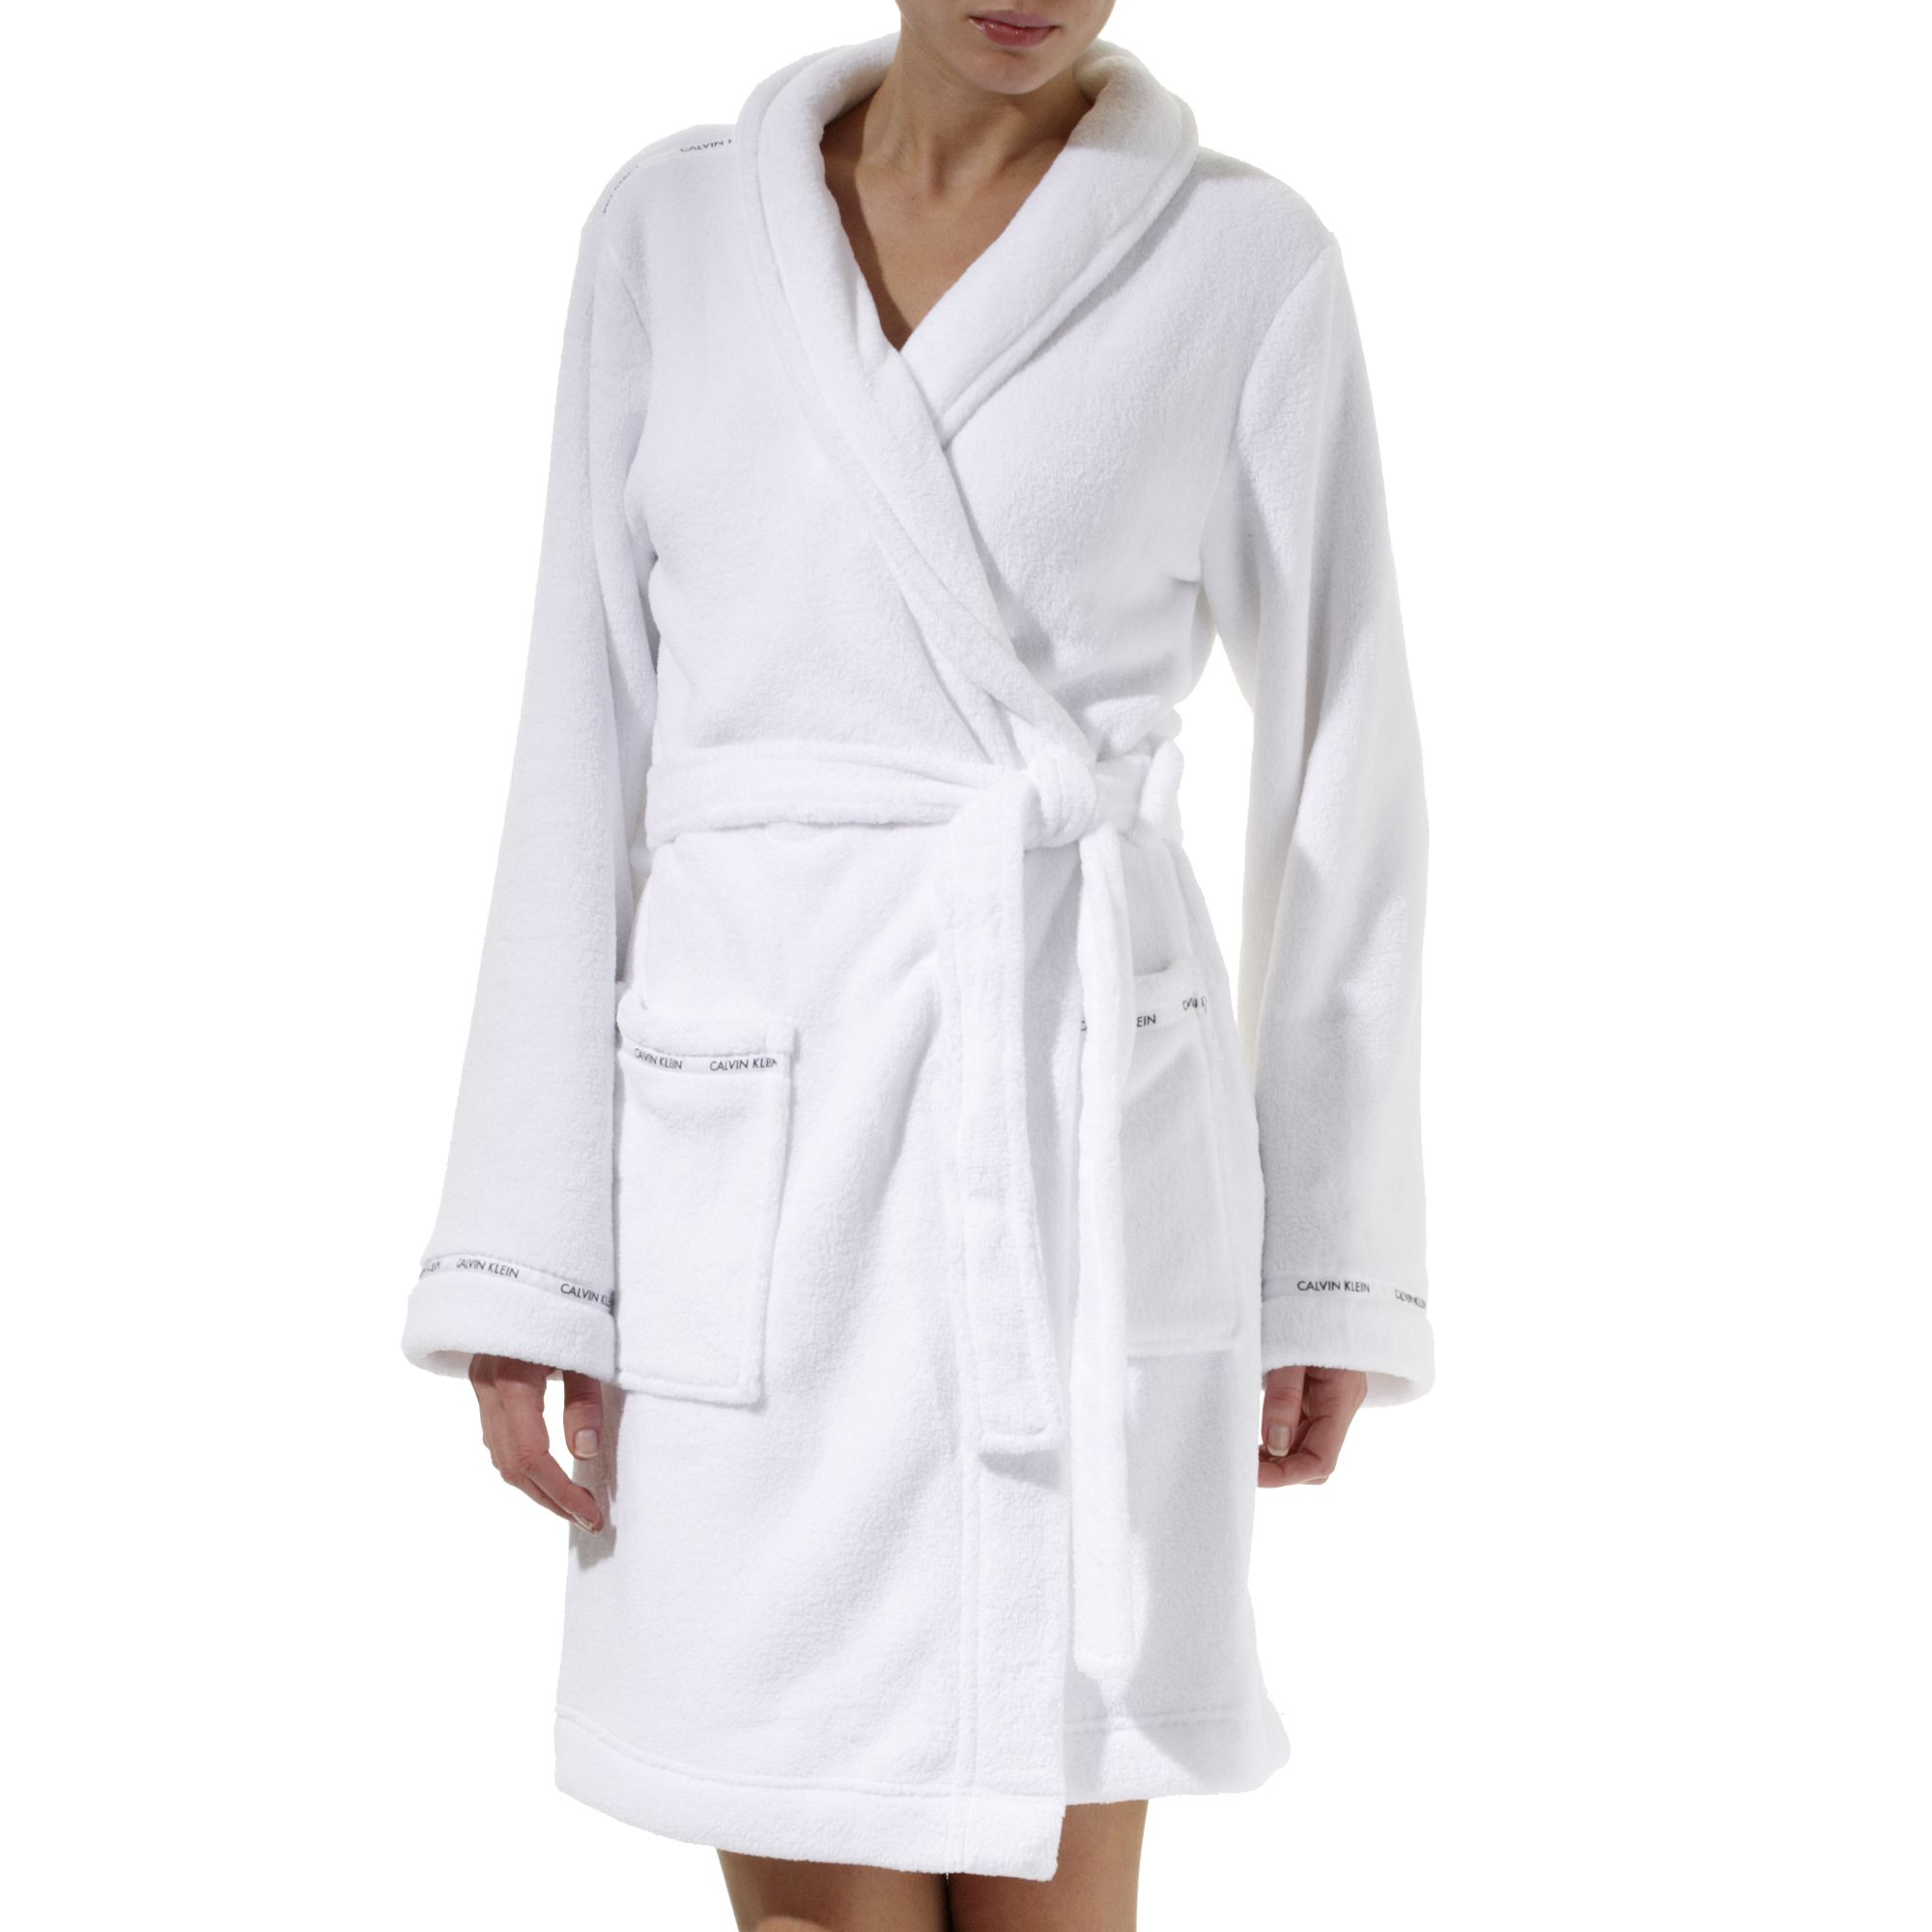 Awesome Calvin Klein Dressing Gown Mens Sketch - Best Evening Gown ...